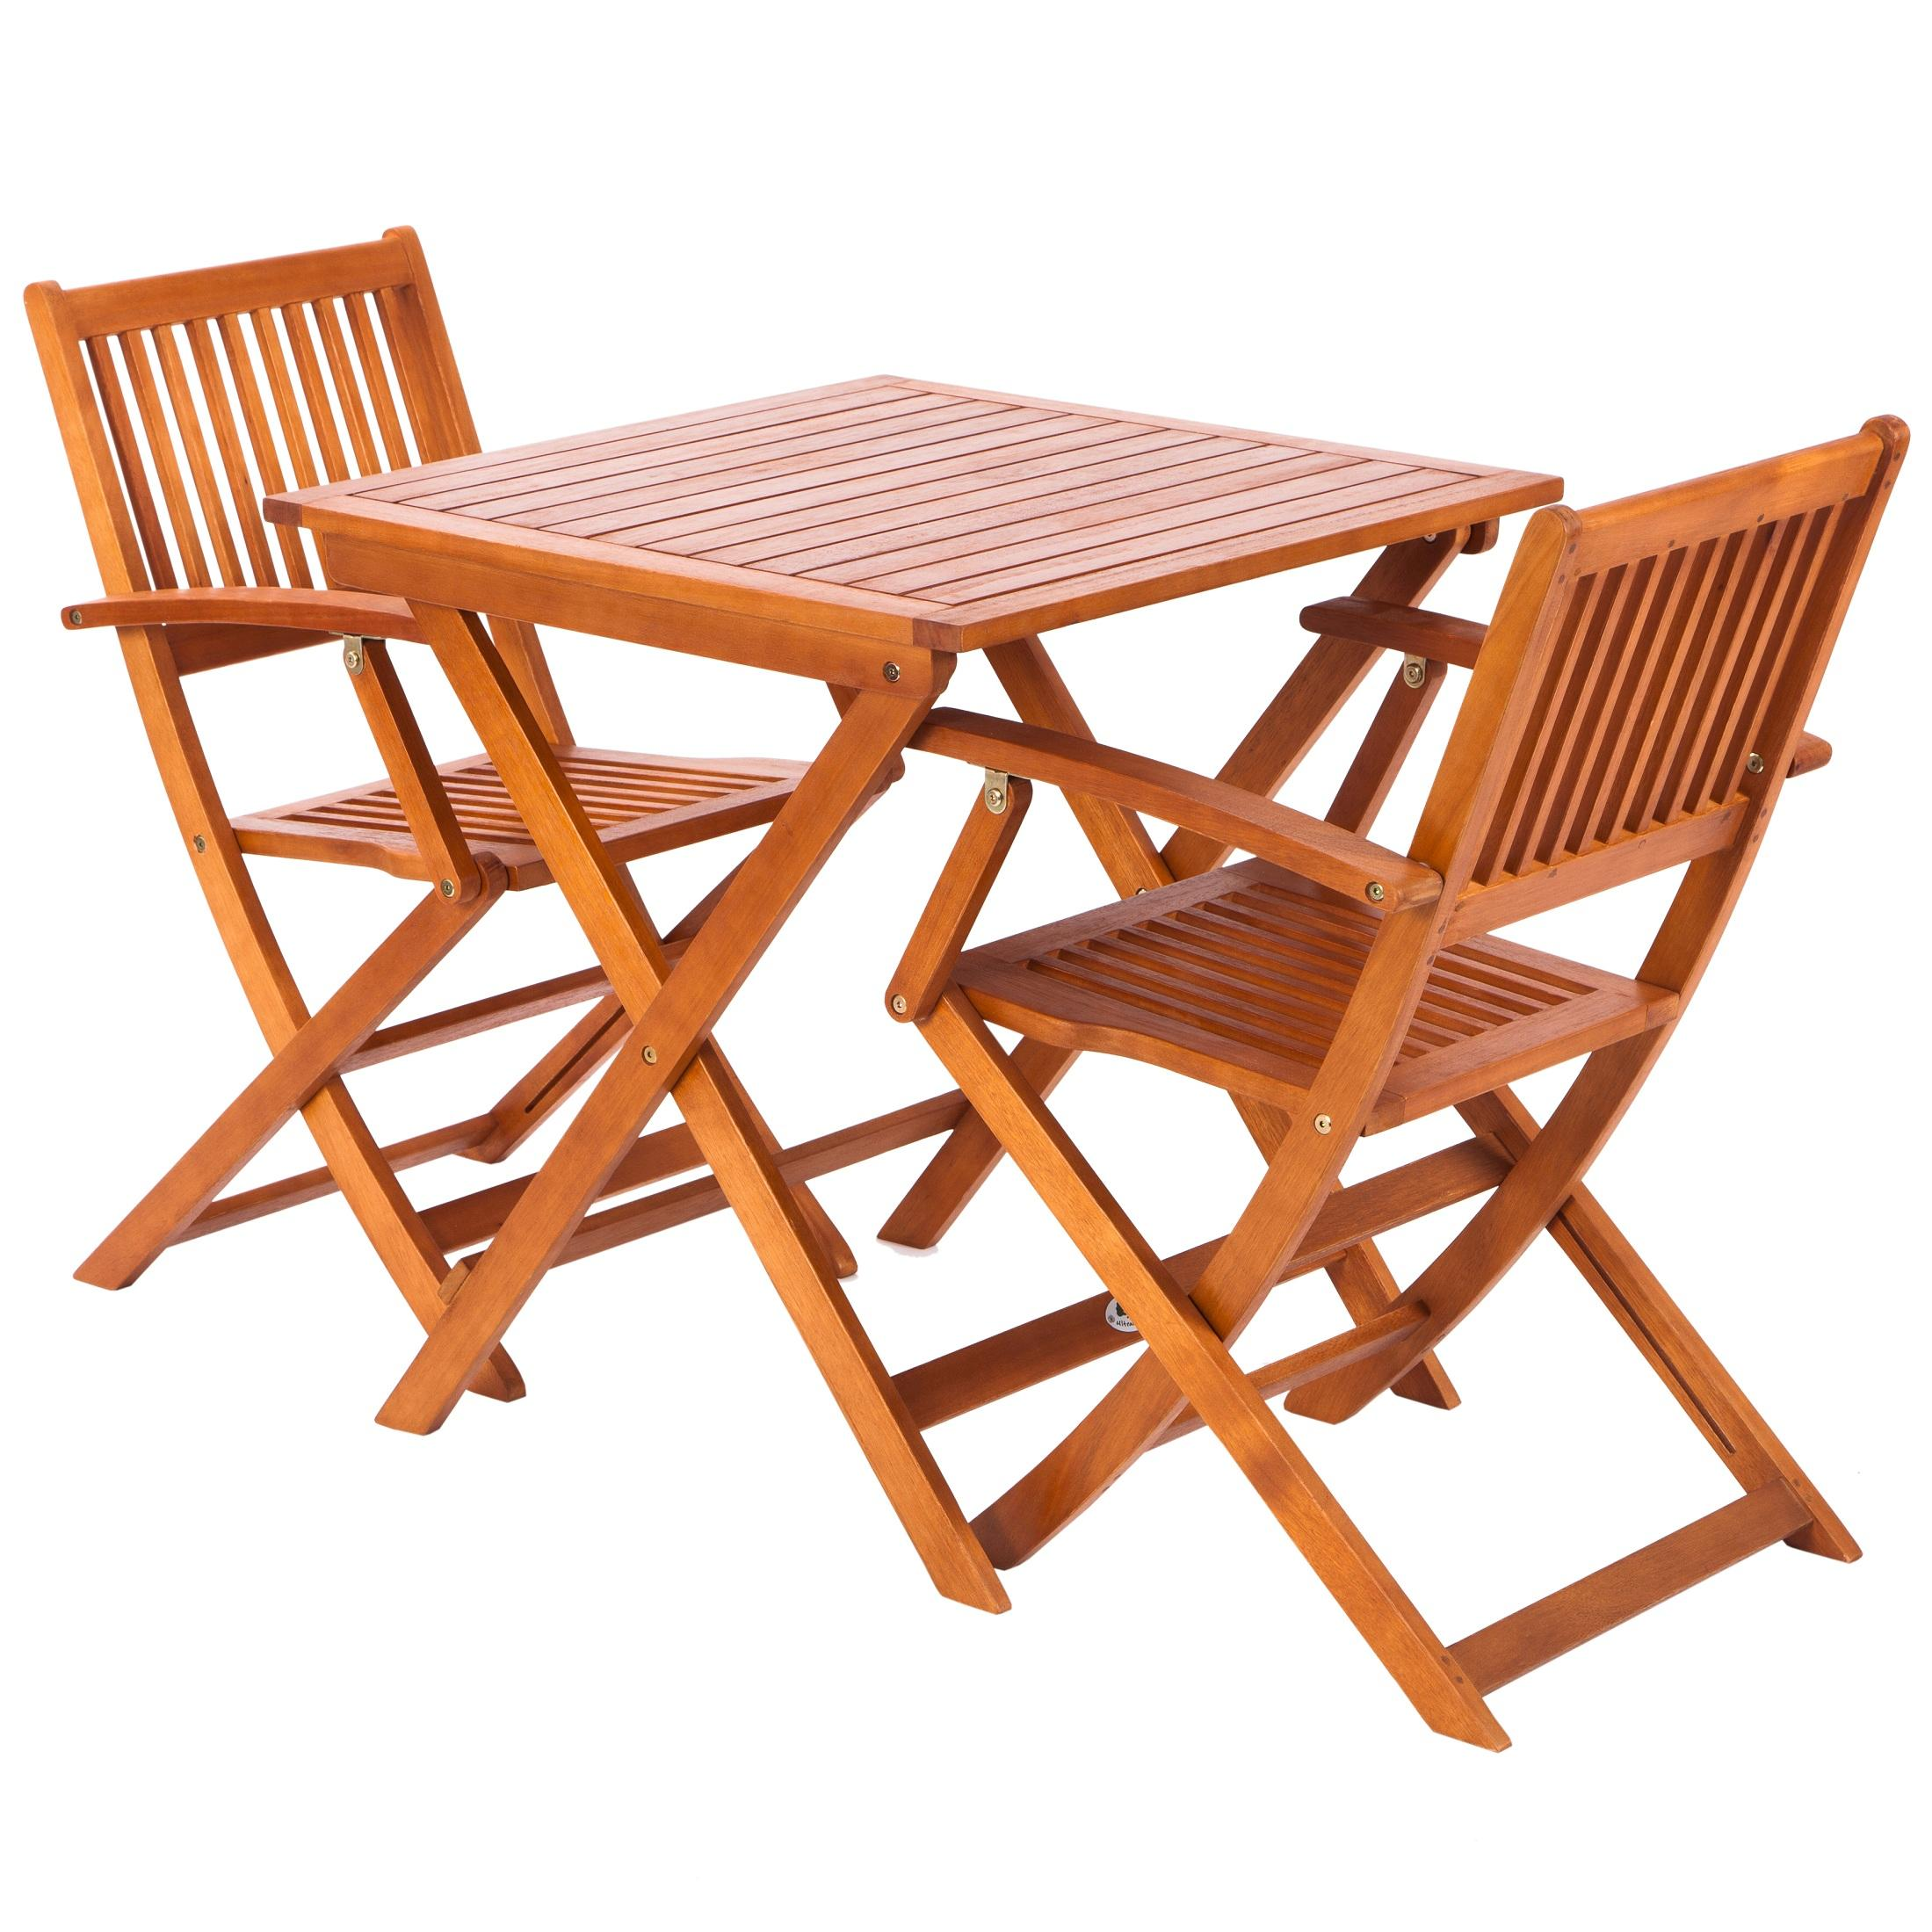 Salon de jardin eucalyptus qualite for Table jardin 4 personnes